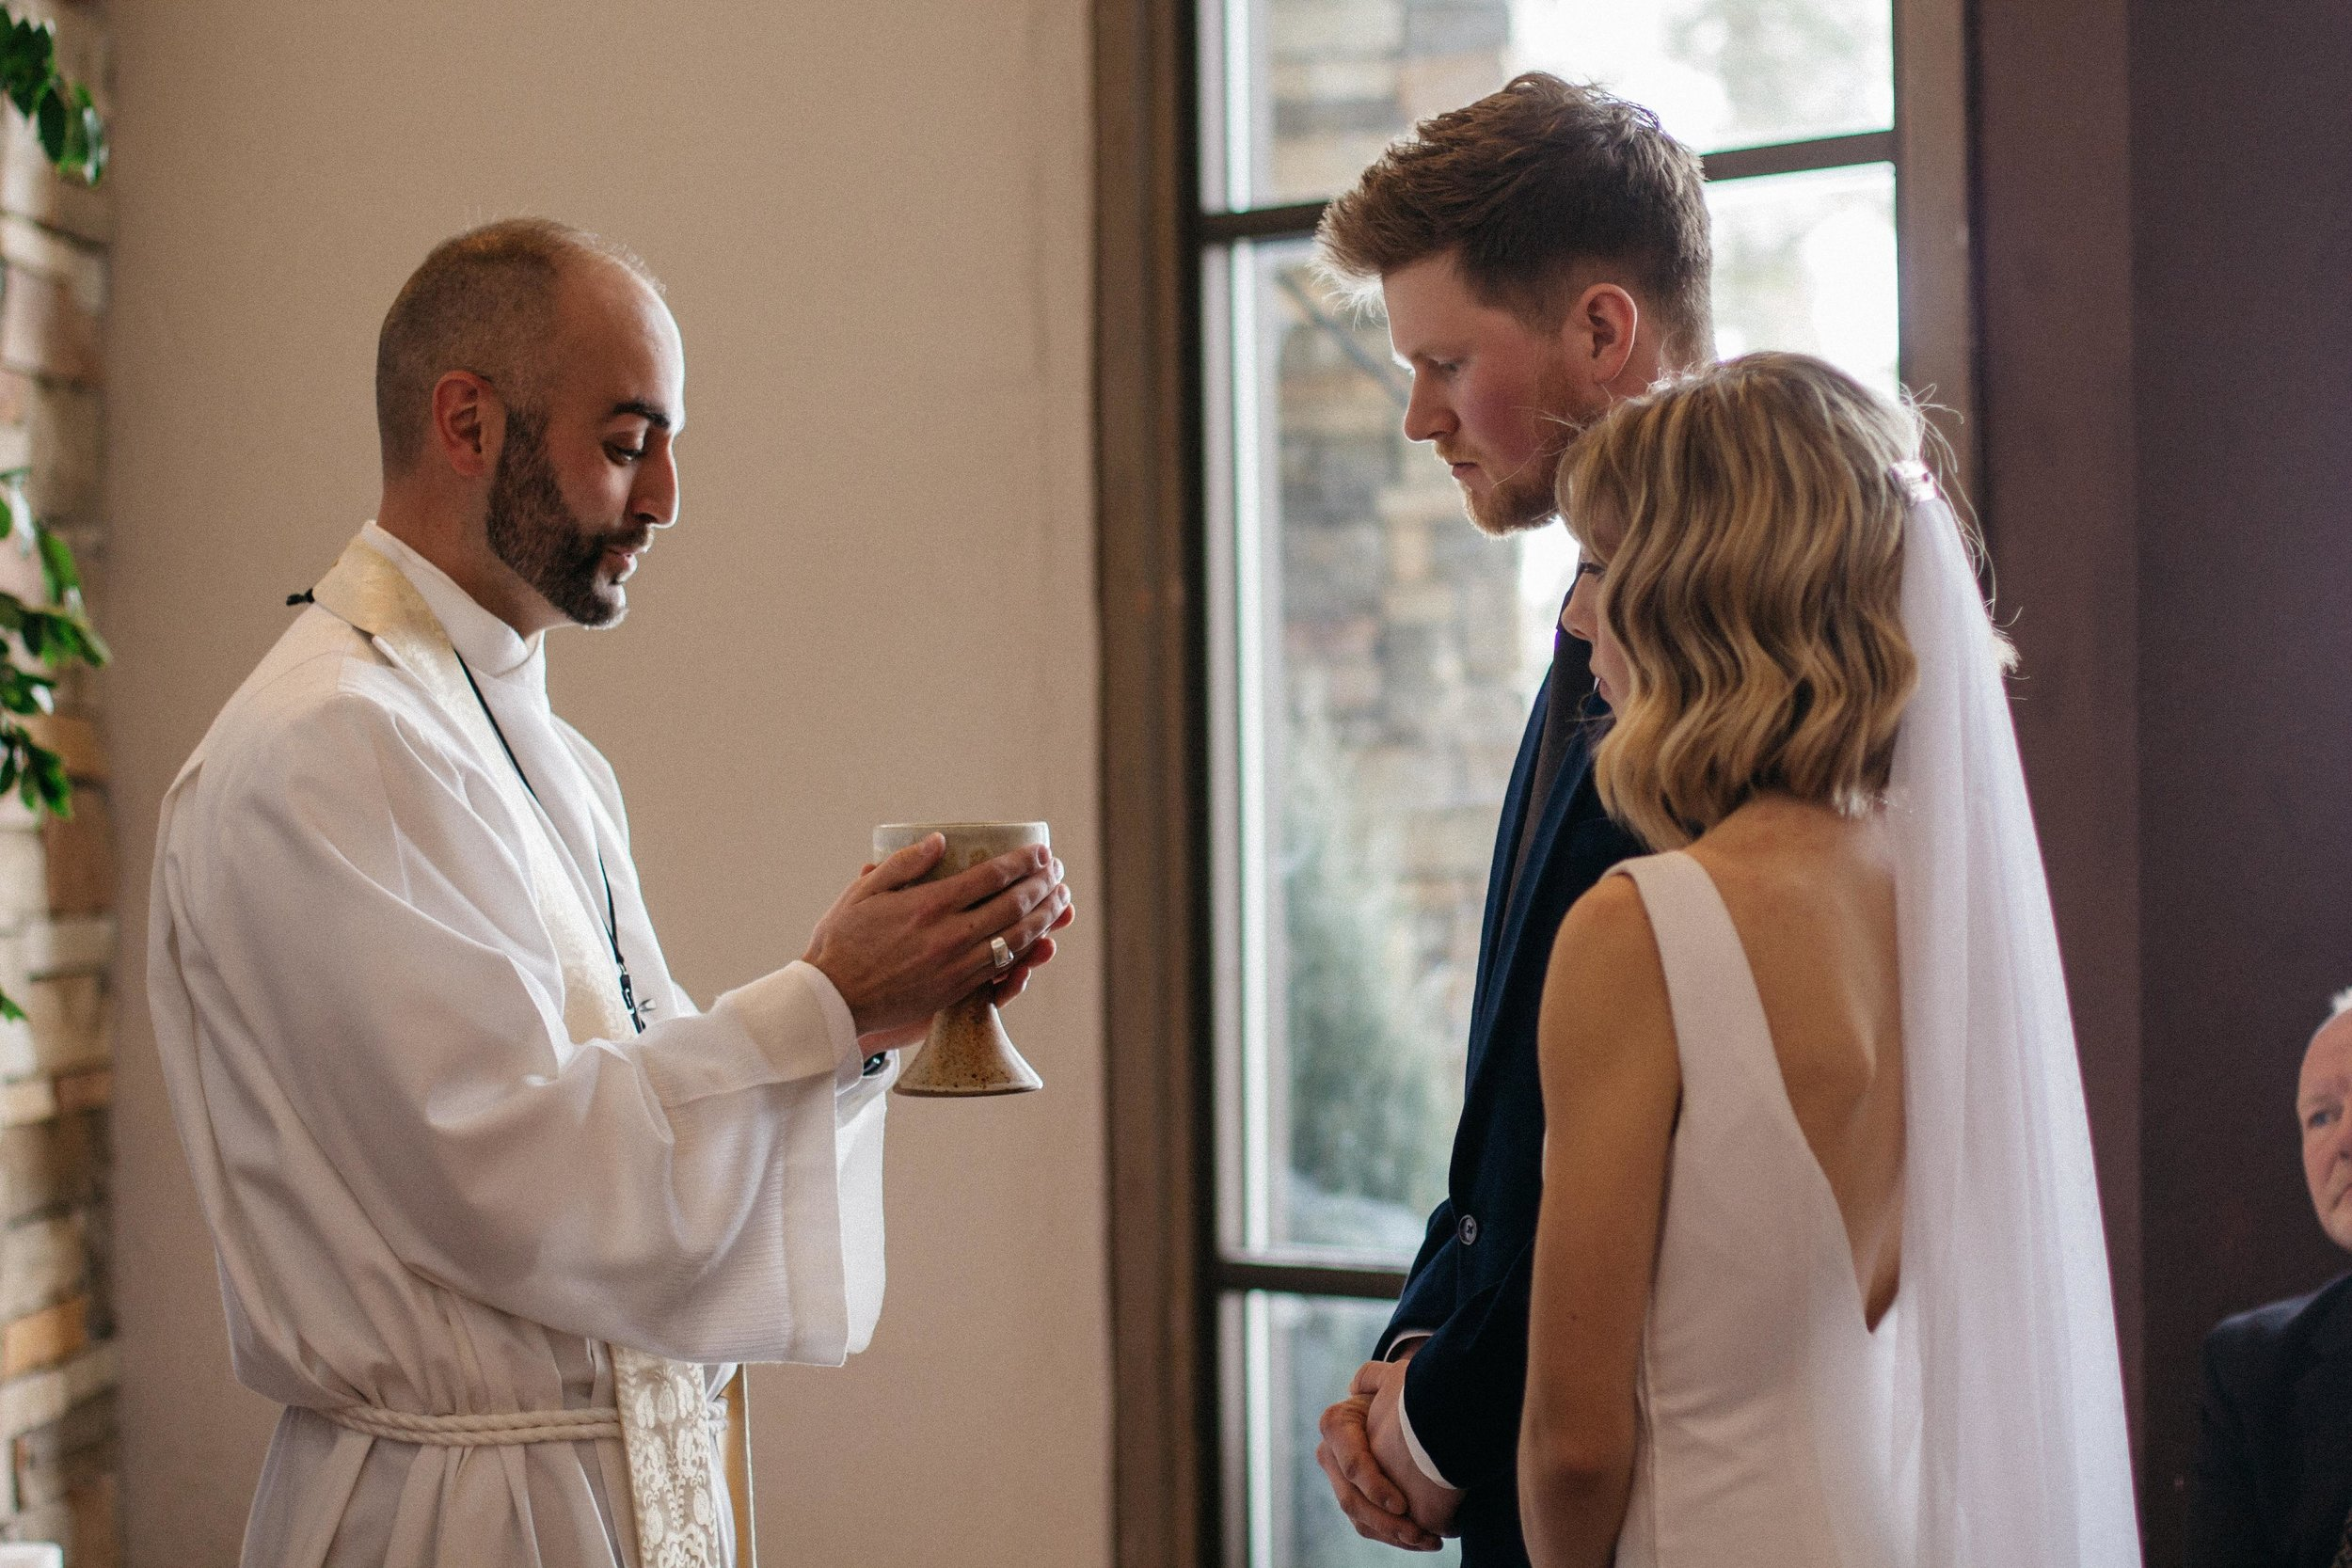 Towards the end of the ceremony, we had communion for the first time as husband and wife to the  most beautiful song  by Sufjan Stevens.